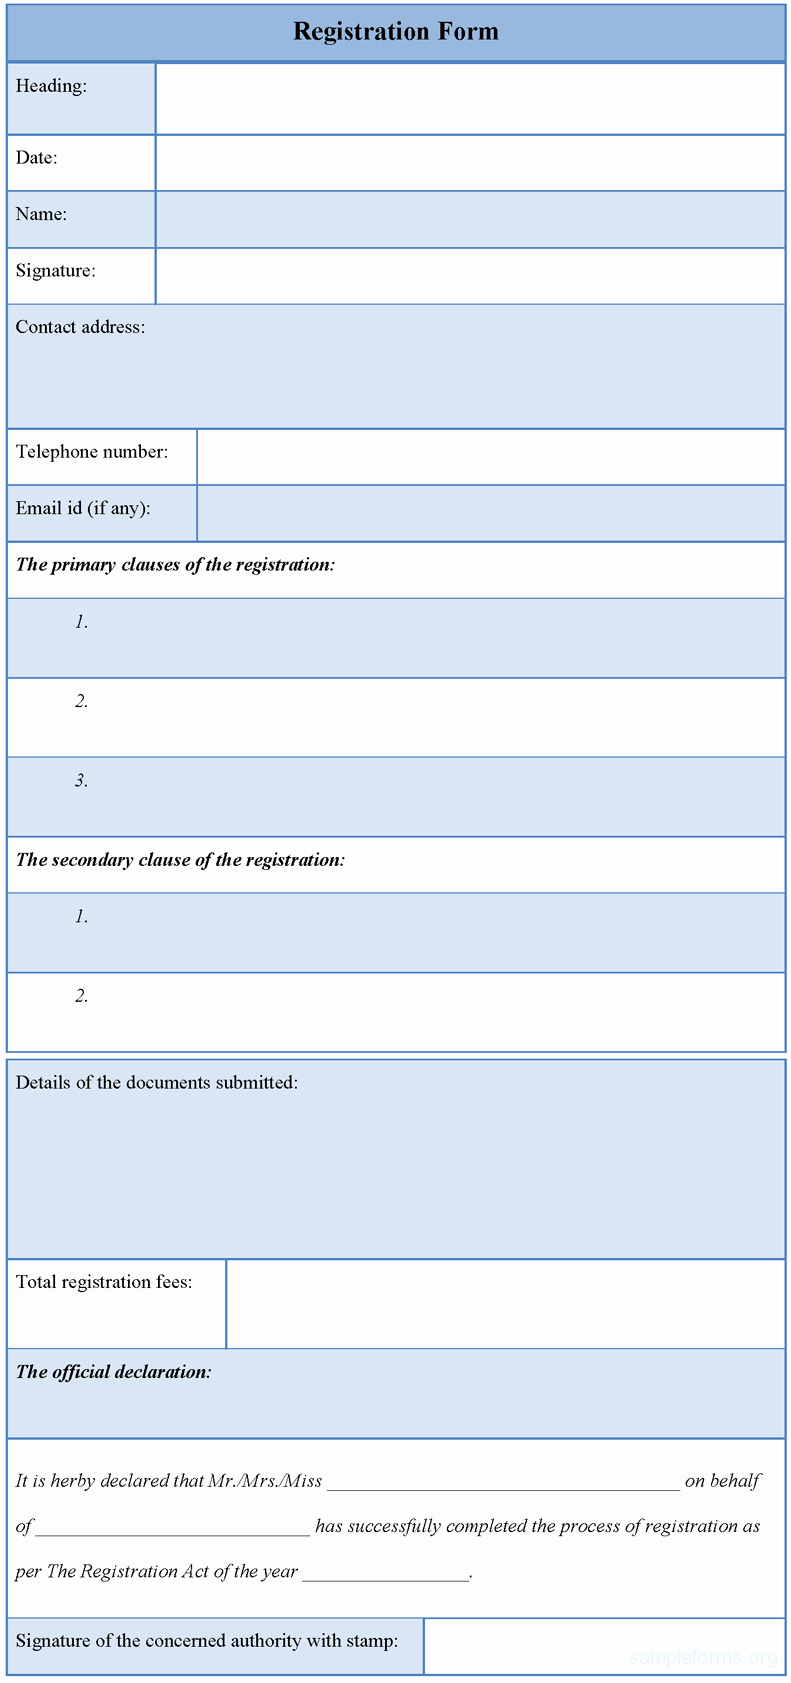 Registration form Template Word Lovely Registration form Template Sample forms